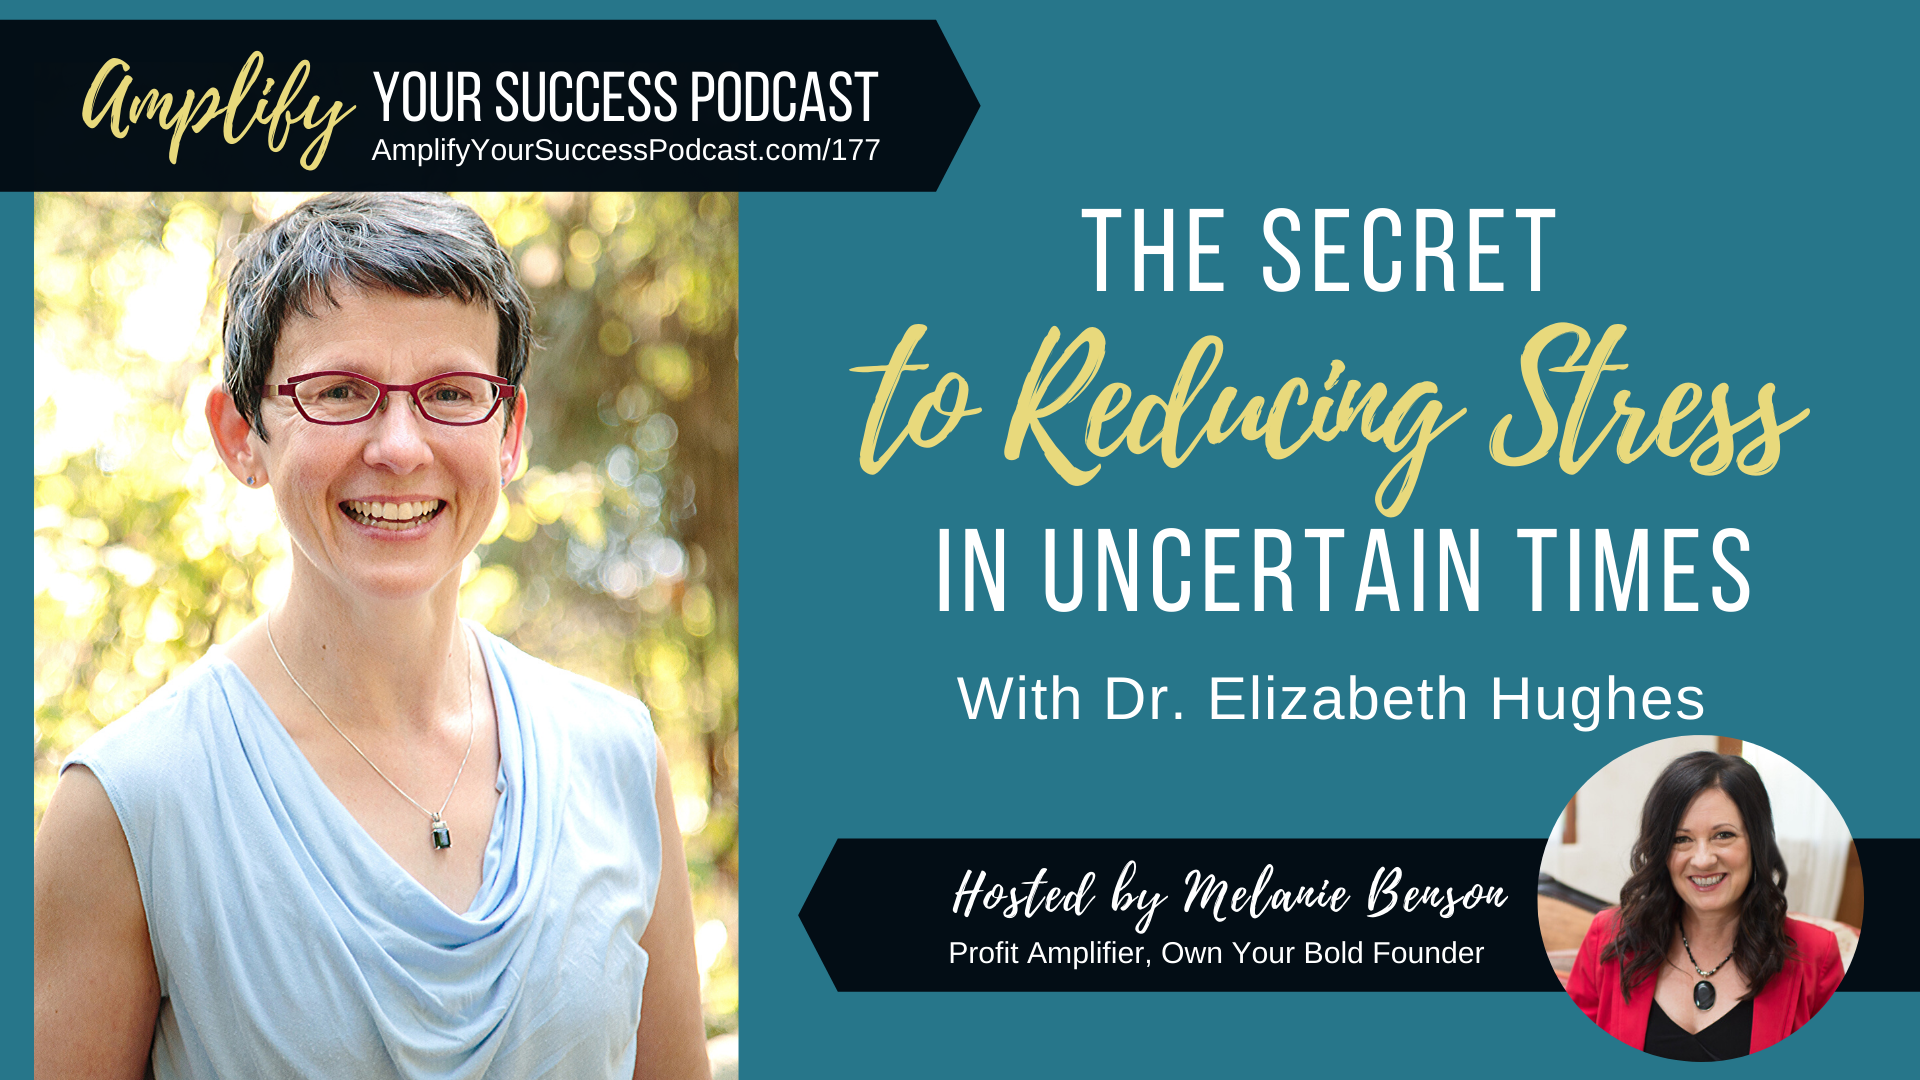 The Secret to Reducing Stress In Uncertain Times with Dr. Elizabeth Hughes on Amplify Your Success Podcast Episode 177 with Melanie Benson